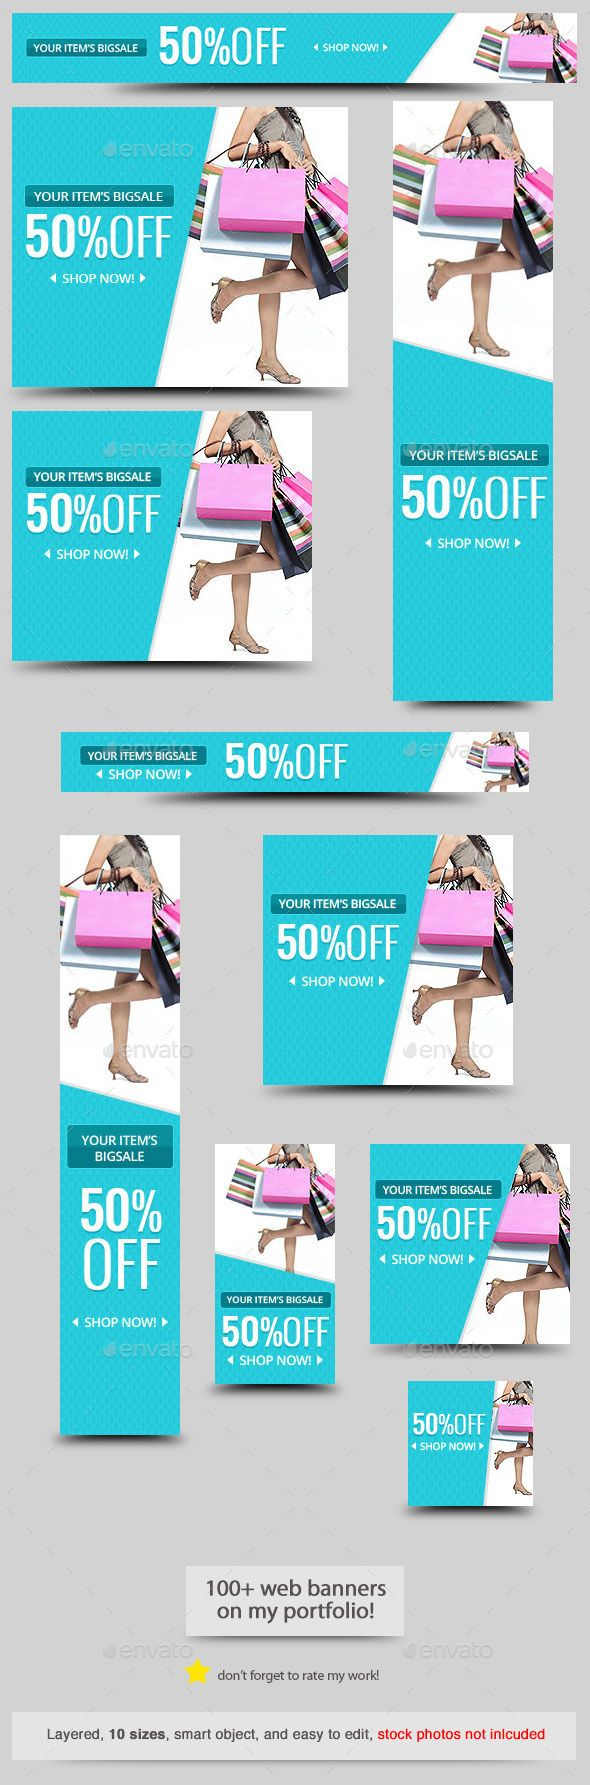 Cool Big Sale Web Banner Template #design #web #ads Download: http://graphicriver.net/item/cool-big-sale-web-banner-template/12670331?ref=ksioks